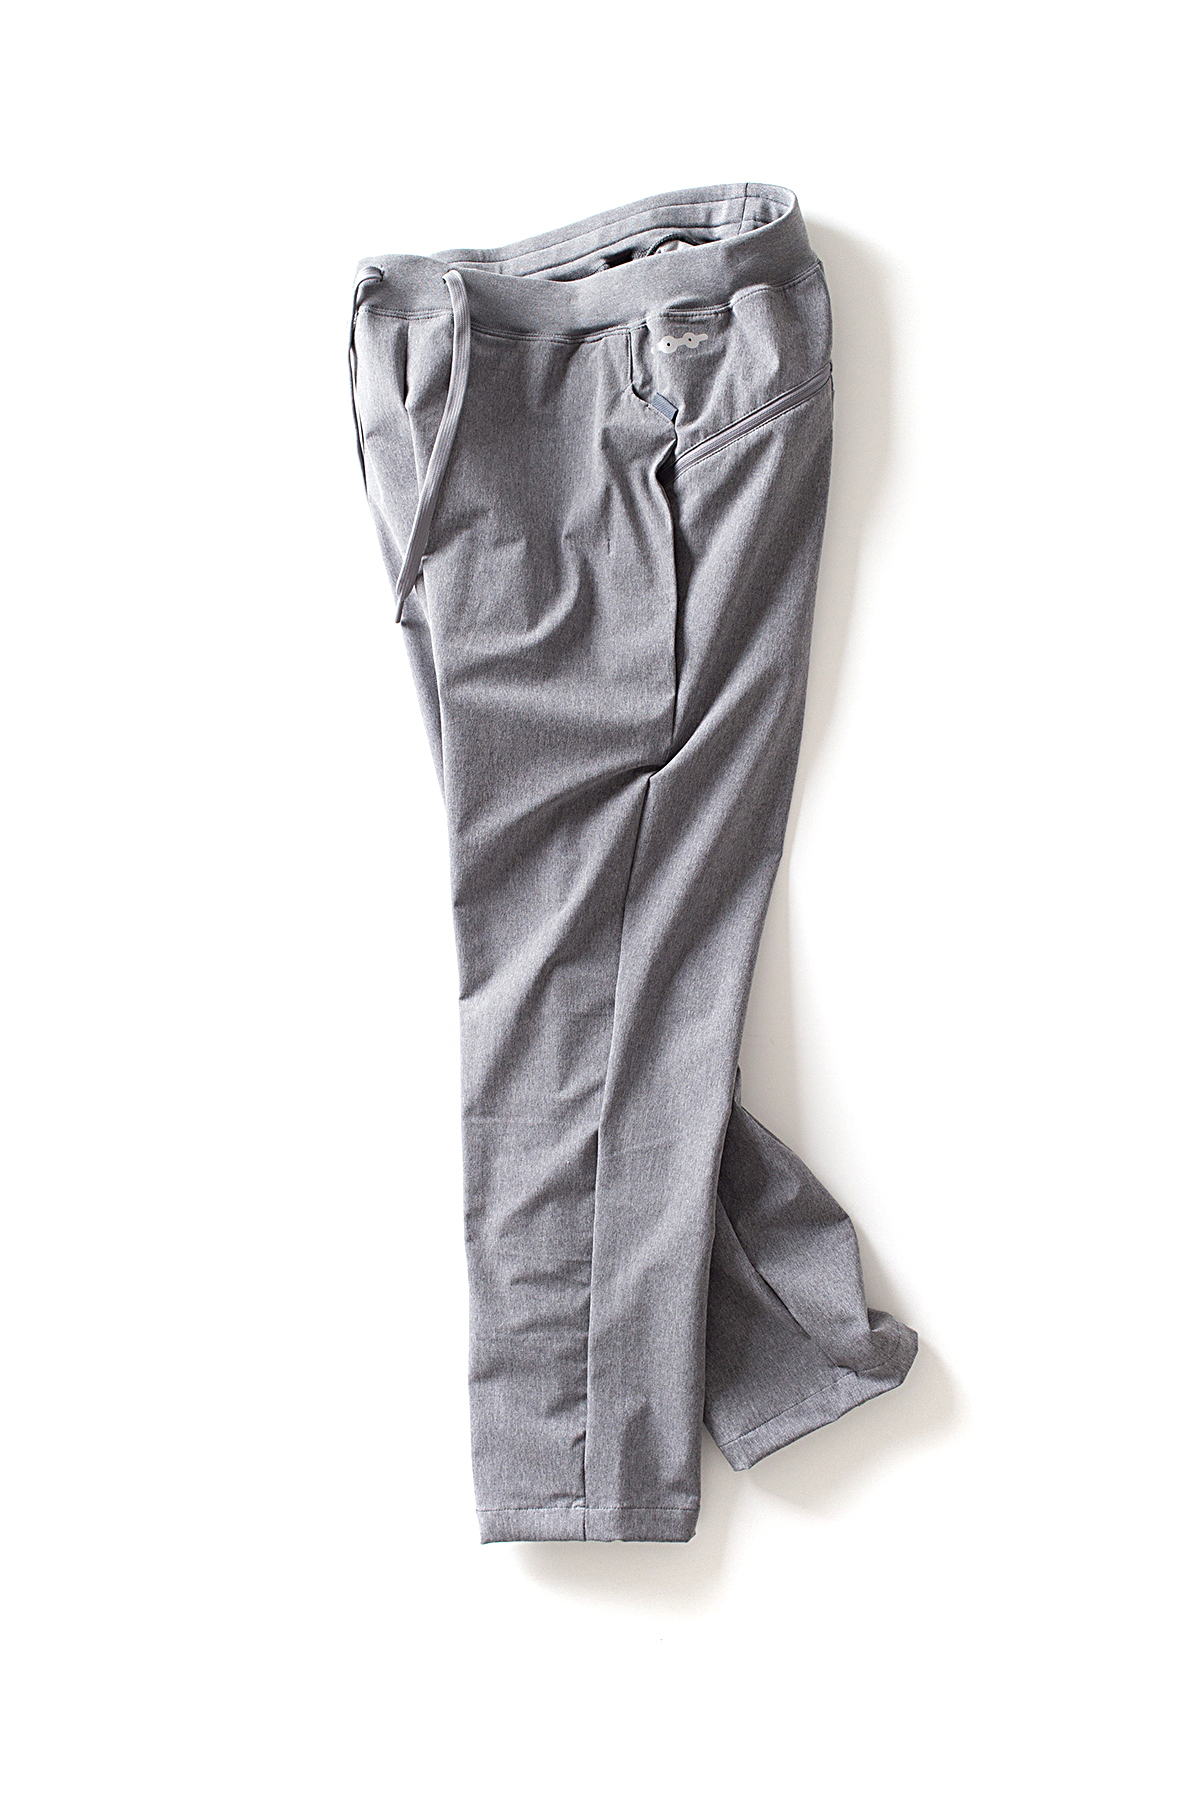 alk phenix : Crank Ankle Pants / Tech-urake (Gray)